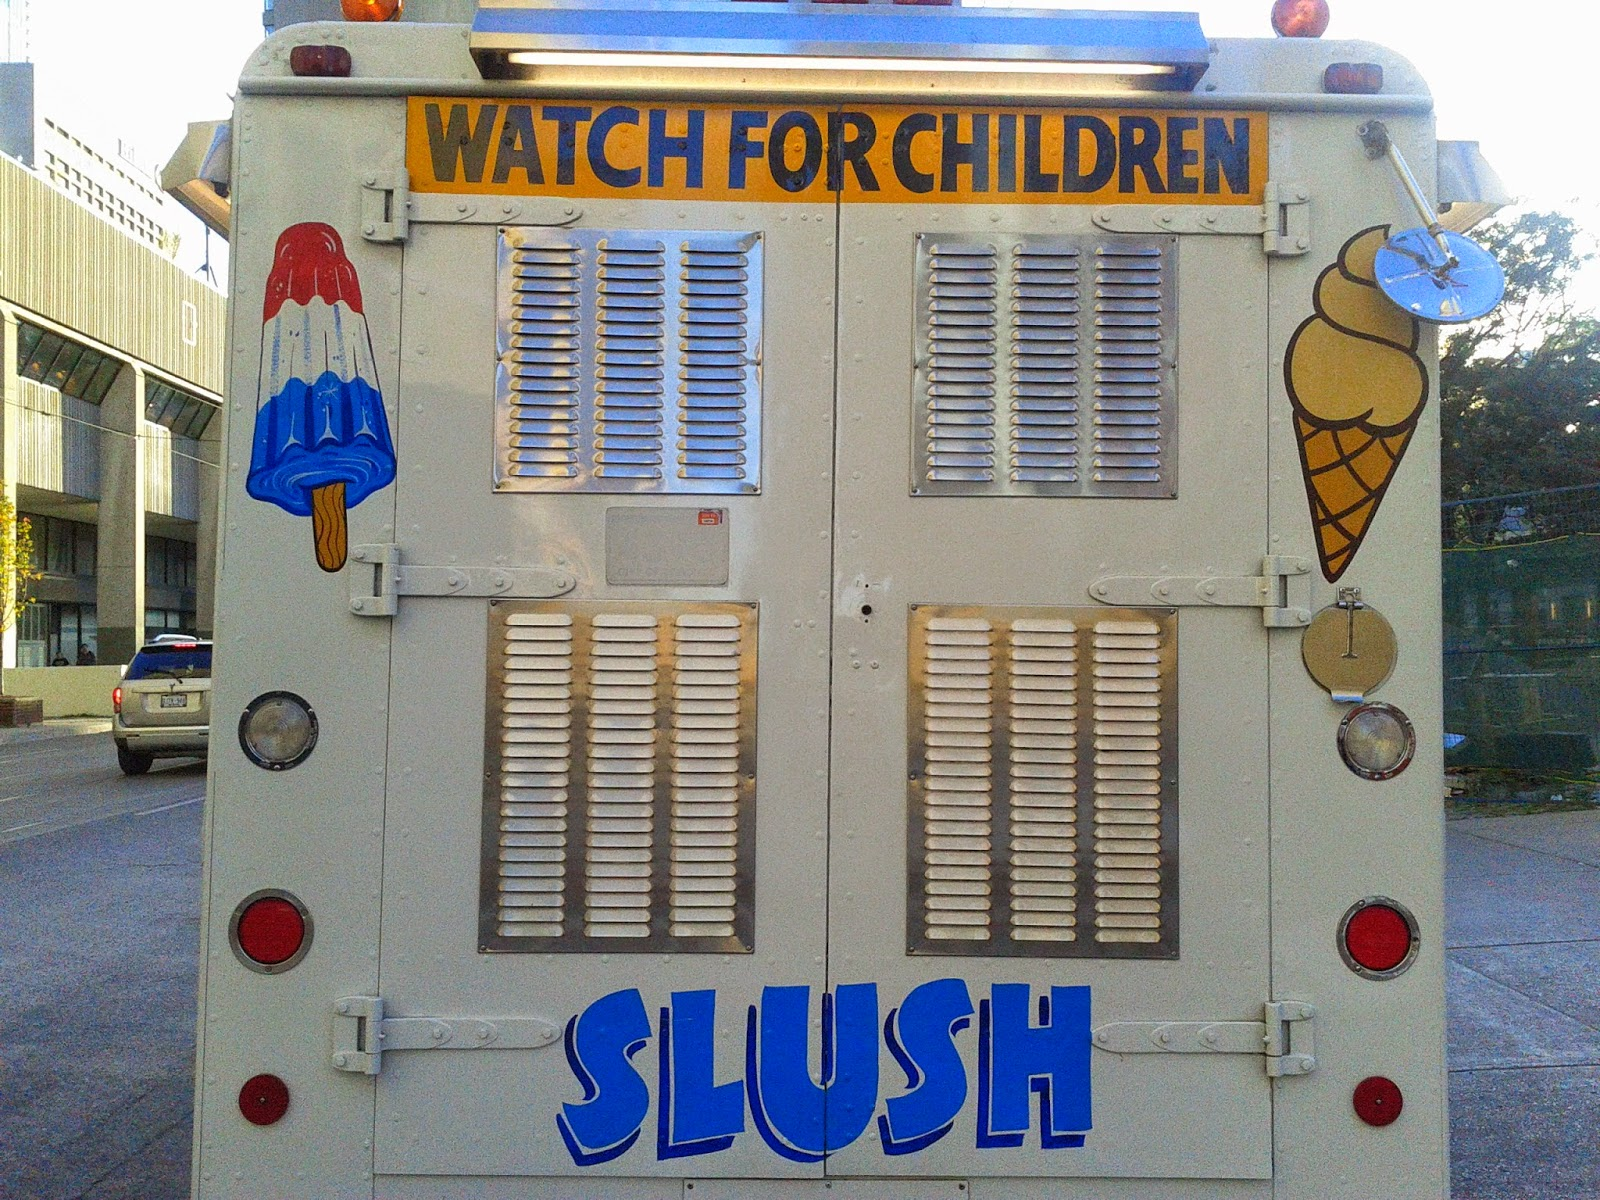 Stock photo: Back of Ice Cream truck (Watch for Children)